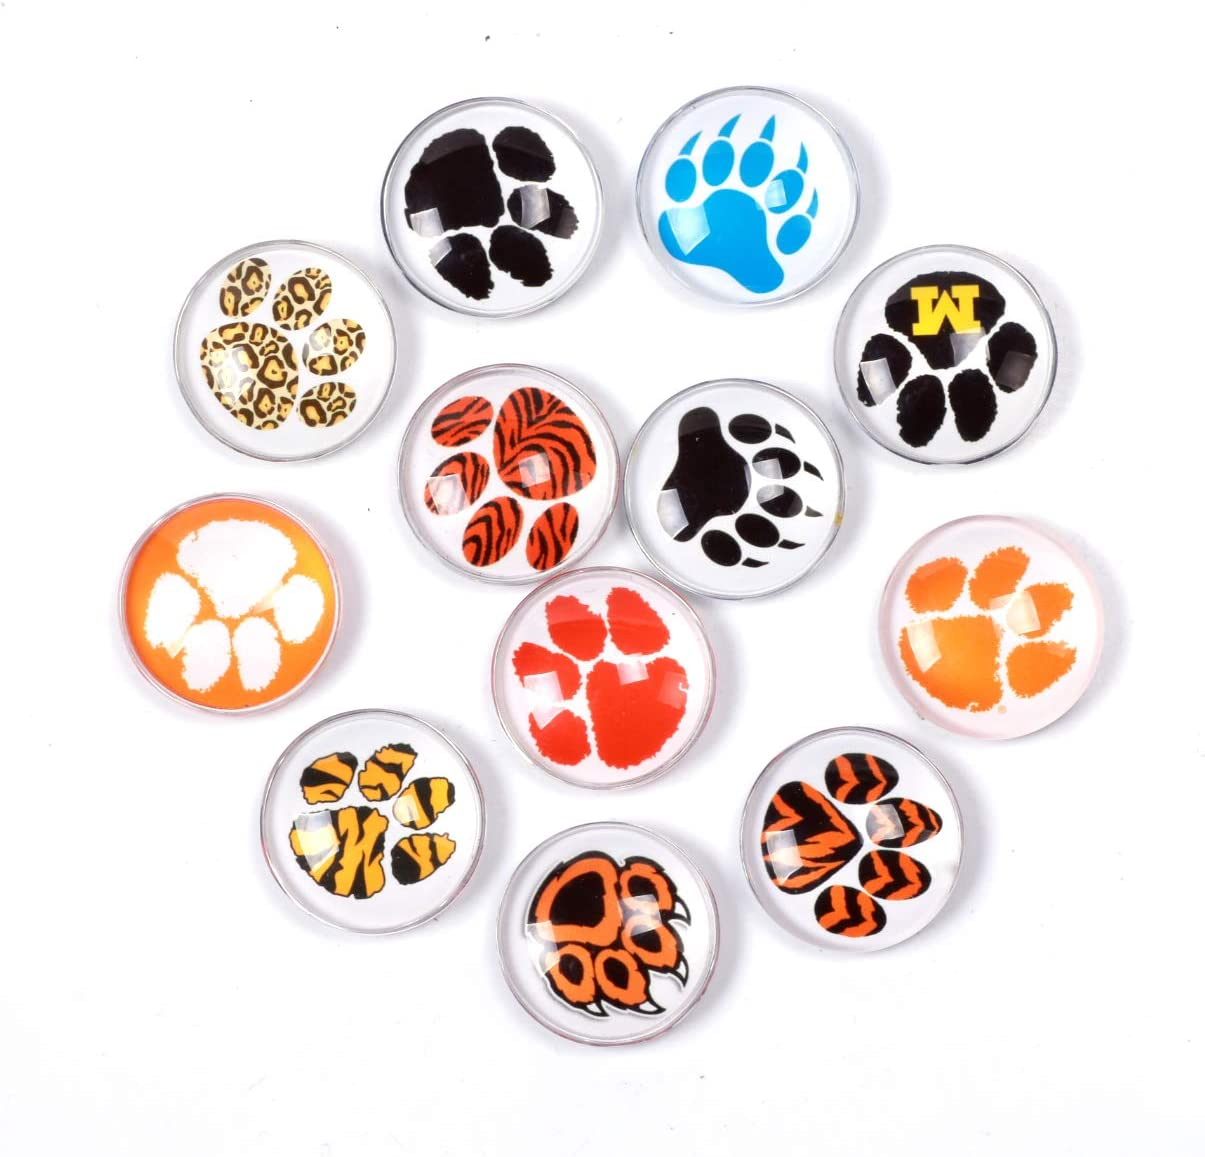 Bear Paw Refrigerator Magnet Party Set of 12 Pack 3D Round Face For Silver Fridge Office Dry Erase Board Stainless Steel Door Freezer Whiteboard Cabinet Magnetic Great Fun for Adult Girl Boy Kid